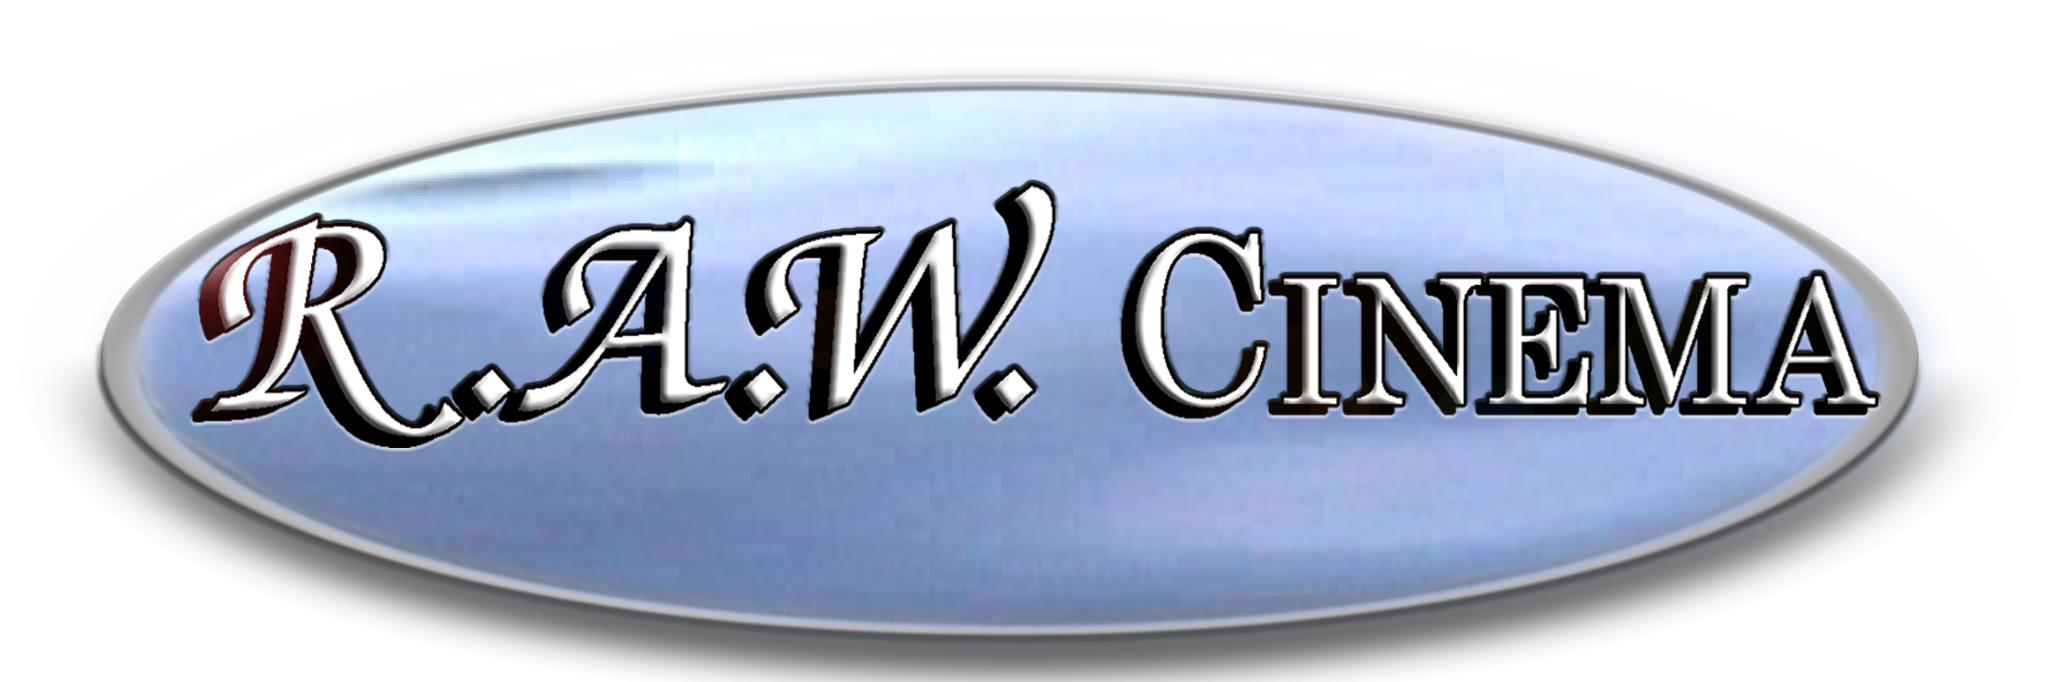 R.A.W. Cinema Logo